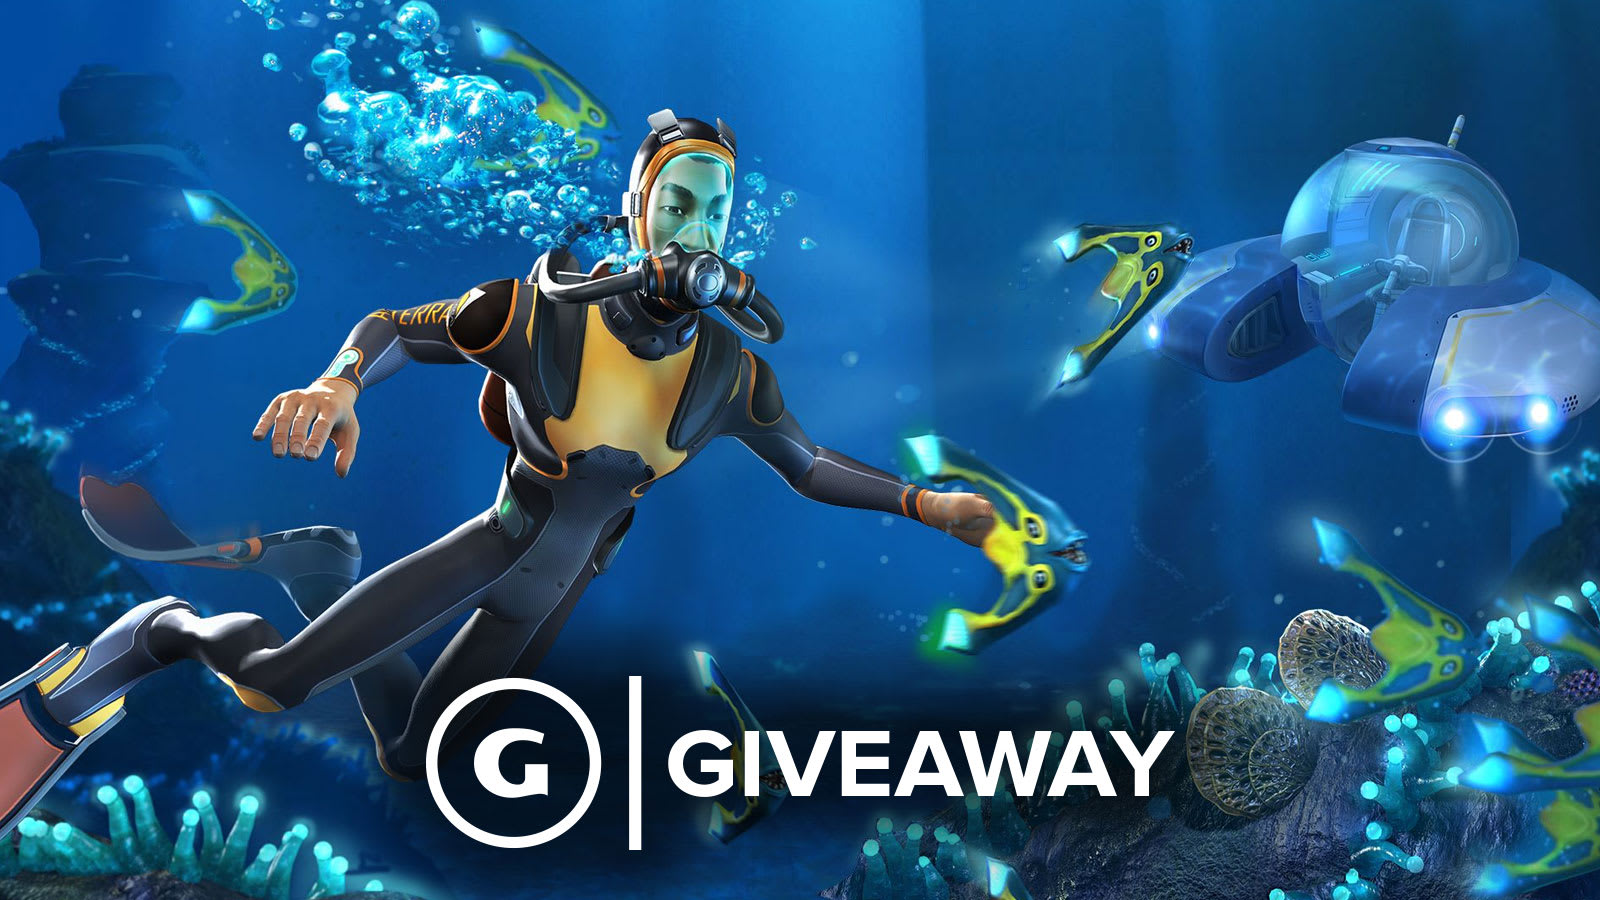 Free PS4 And Xbox One Codes For Subnautica Giveaway - GameSpot